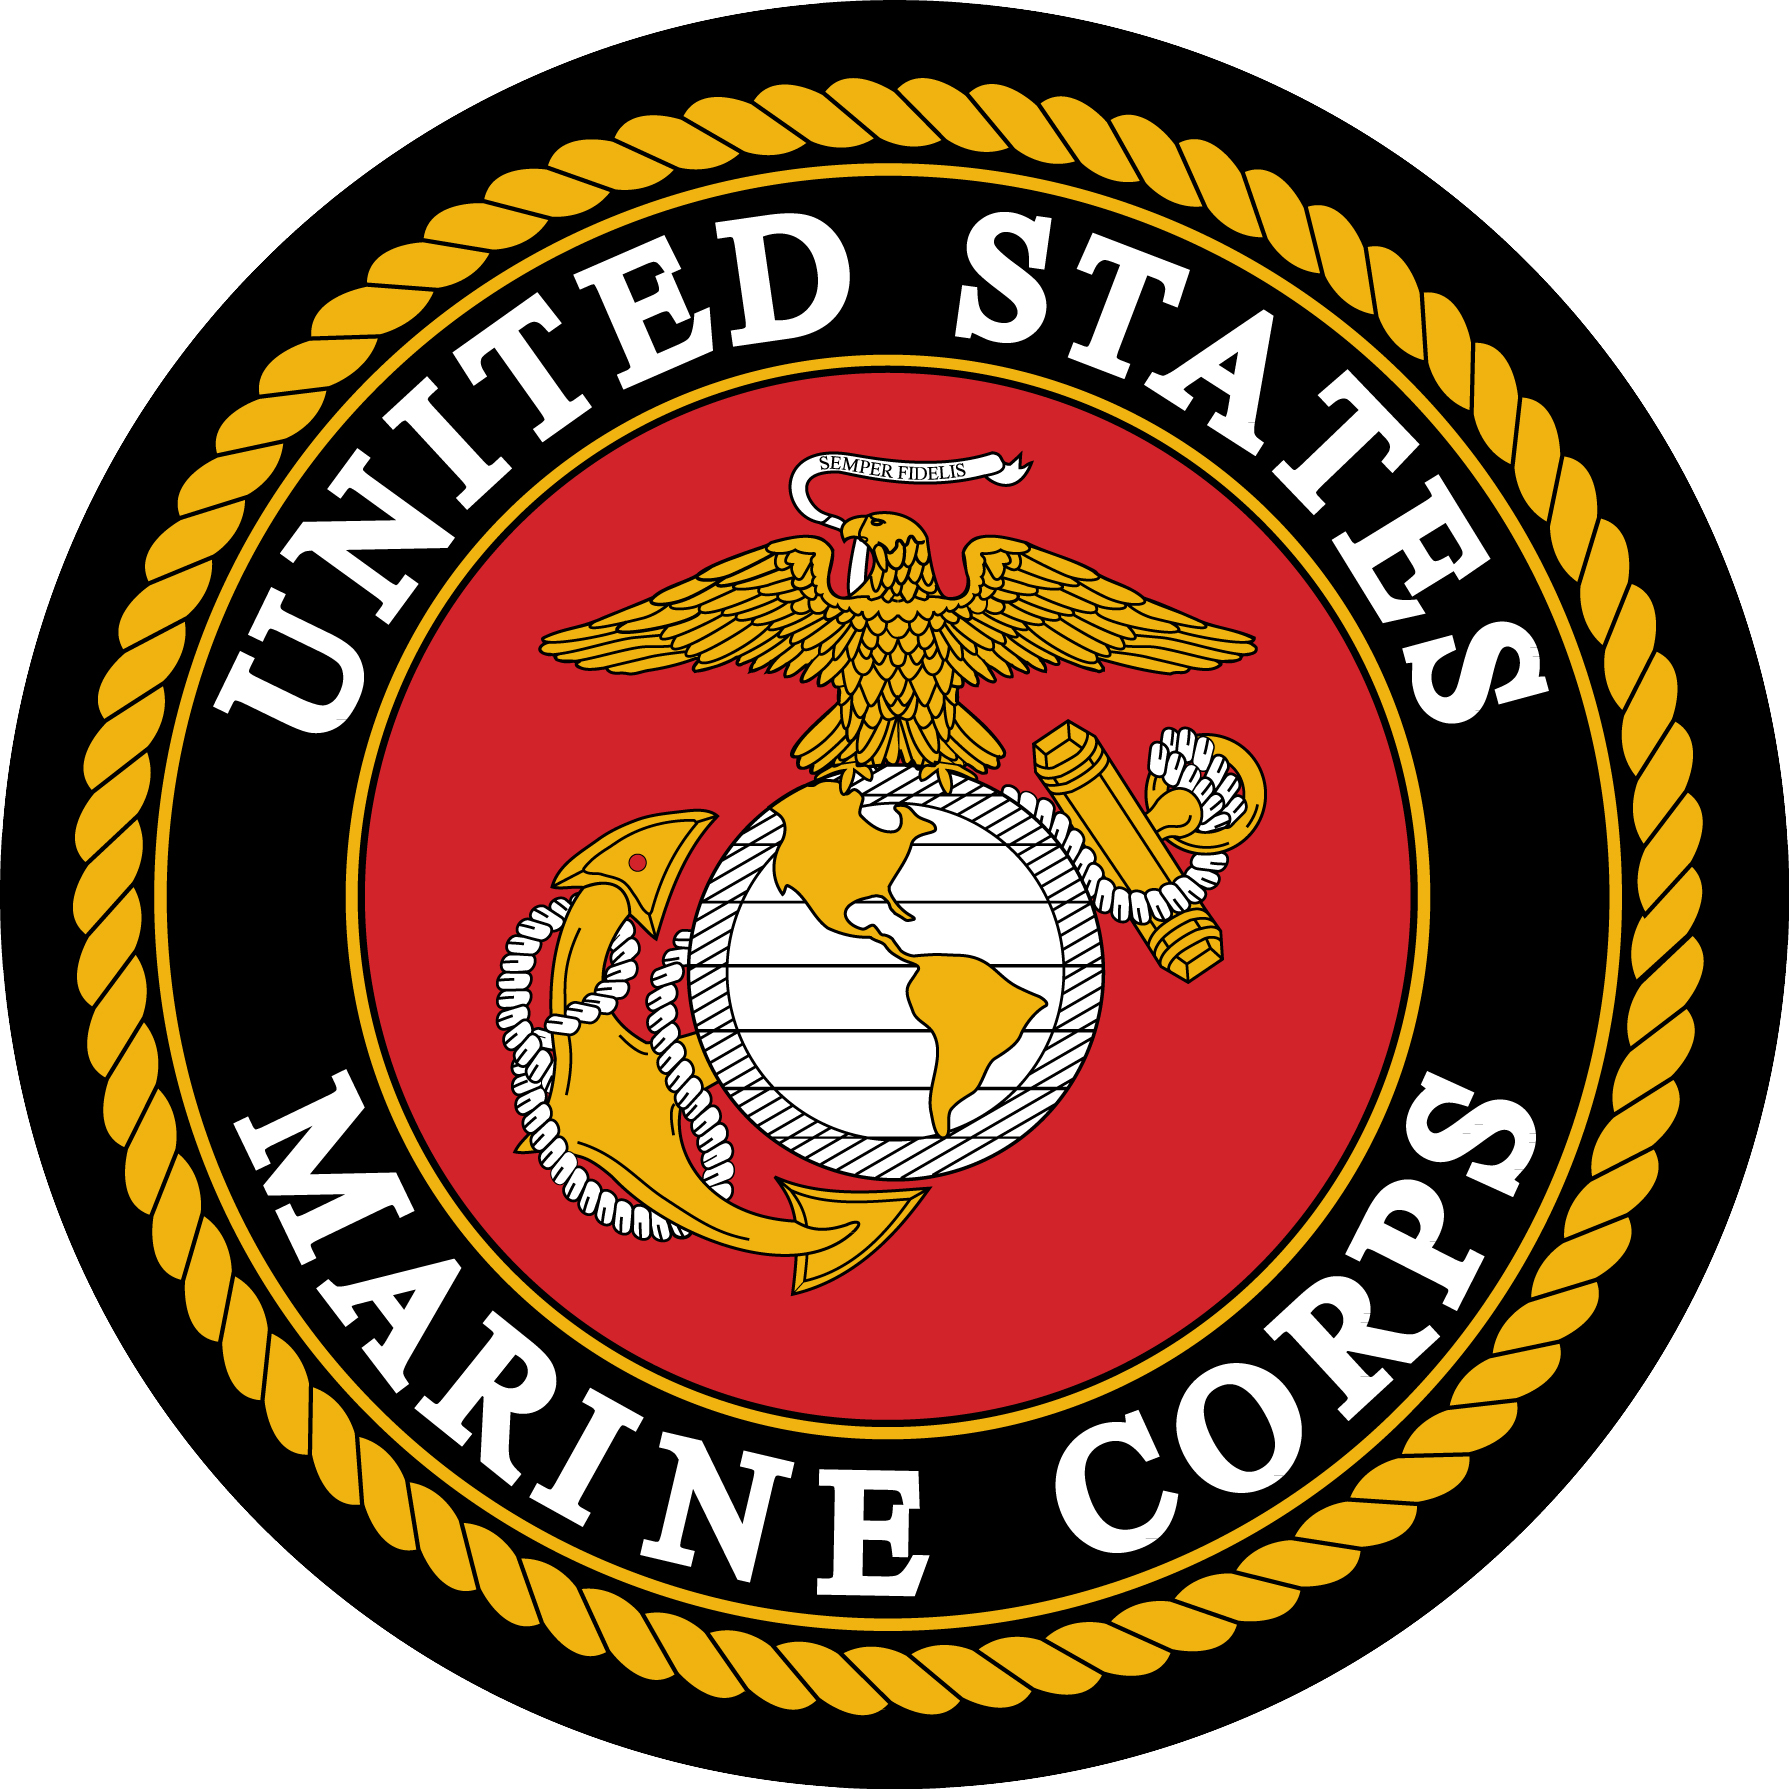 Usmc seal png. And graphics transparent images